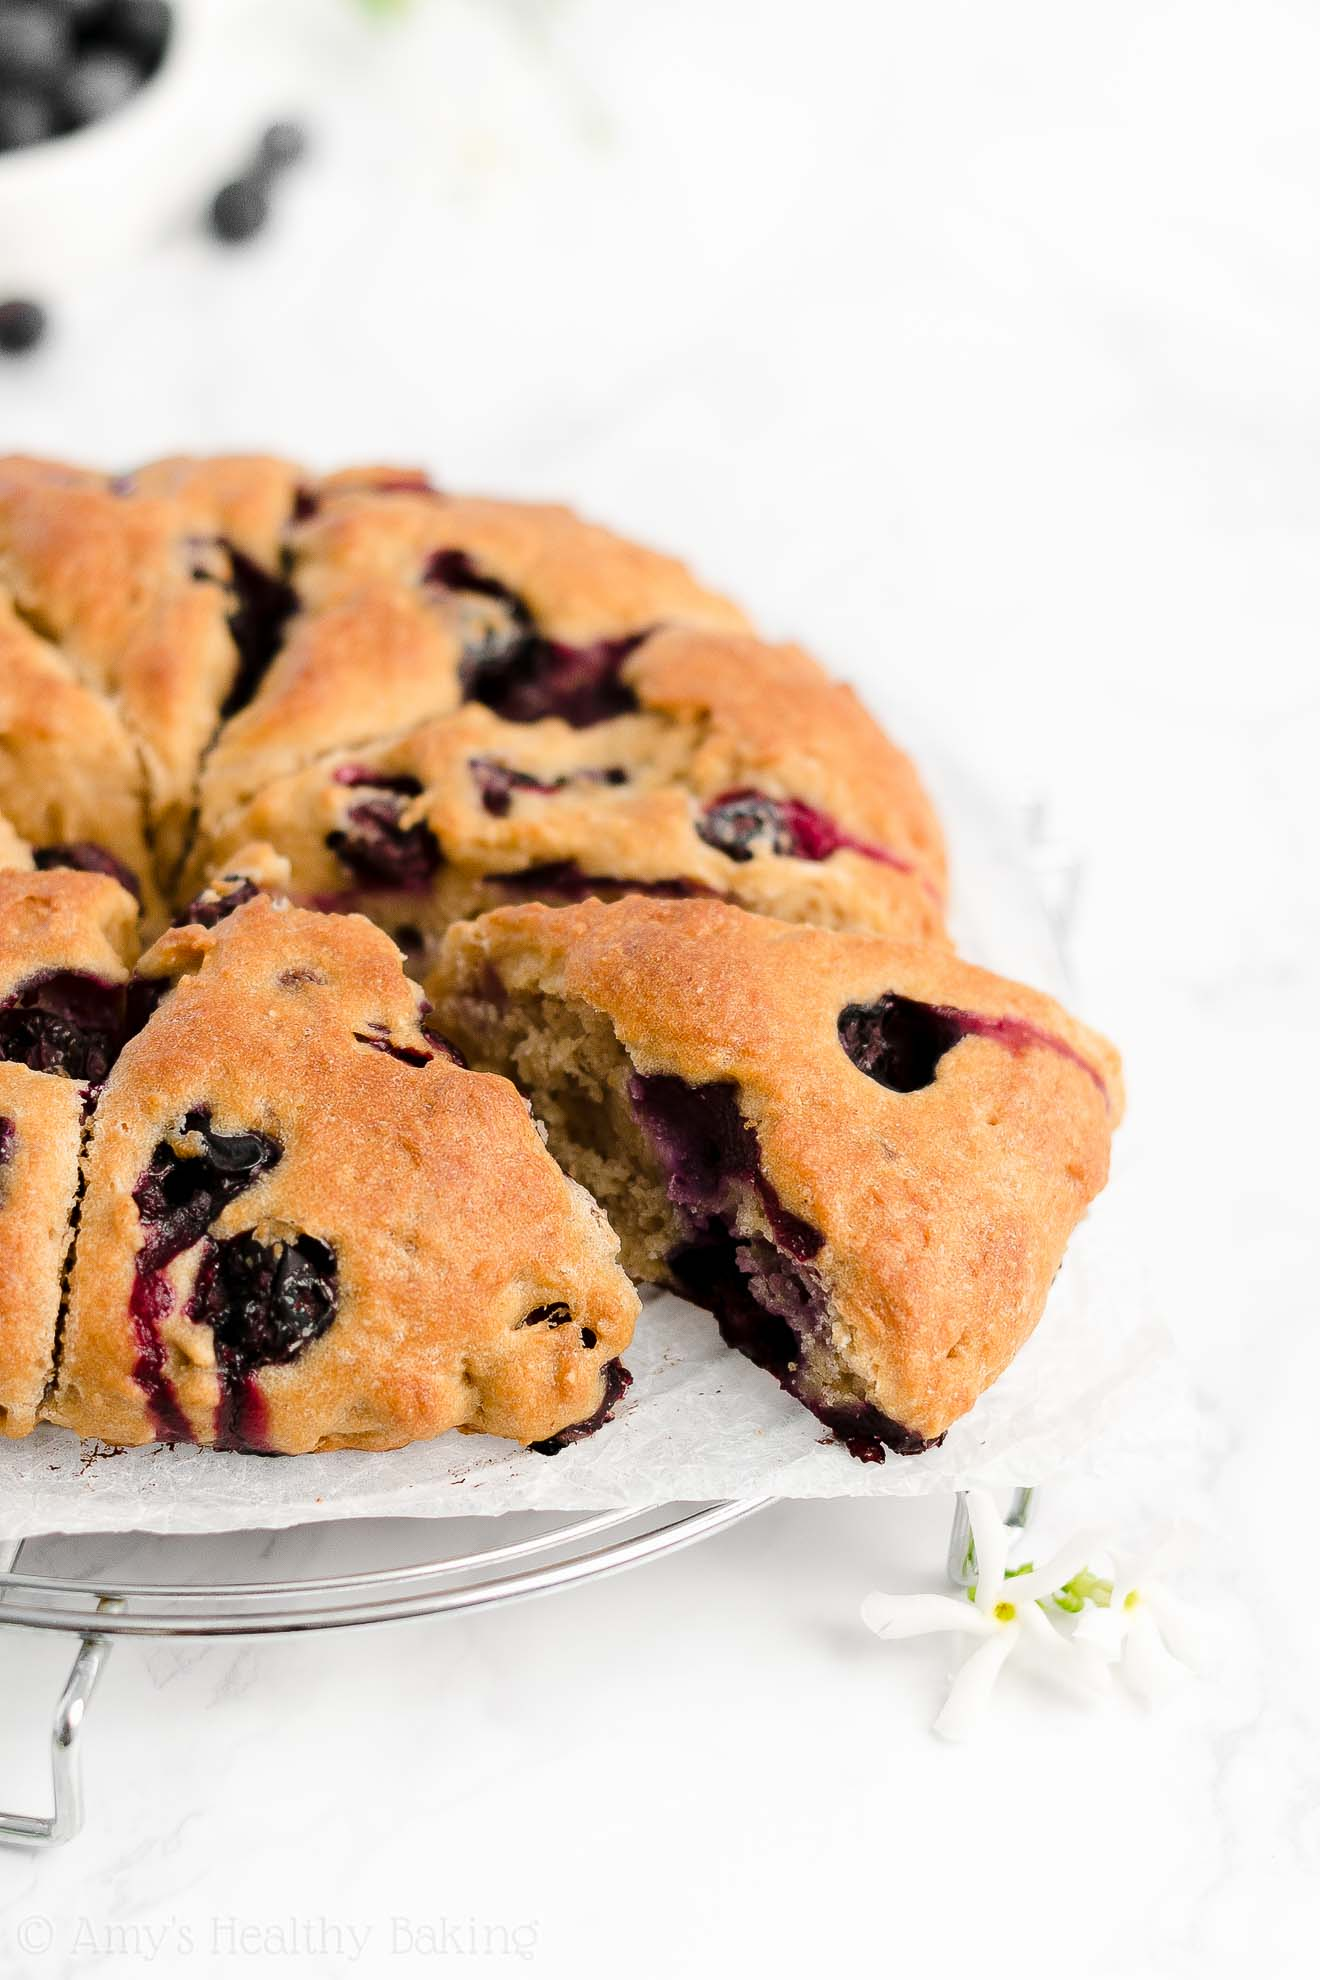 Easy Healthy Gluten Free Vegan Sugar Free Fresh Blueberry Almond Scones